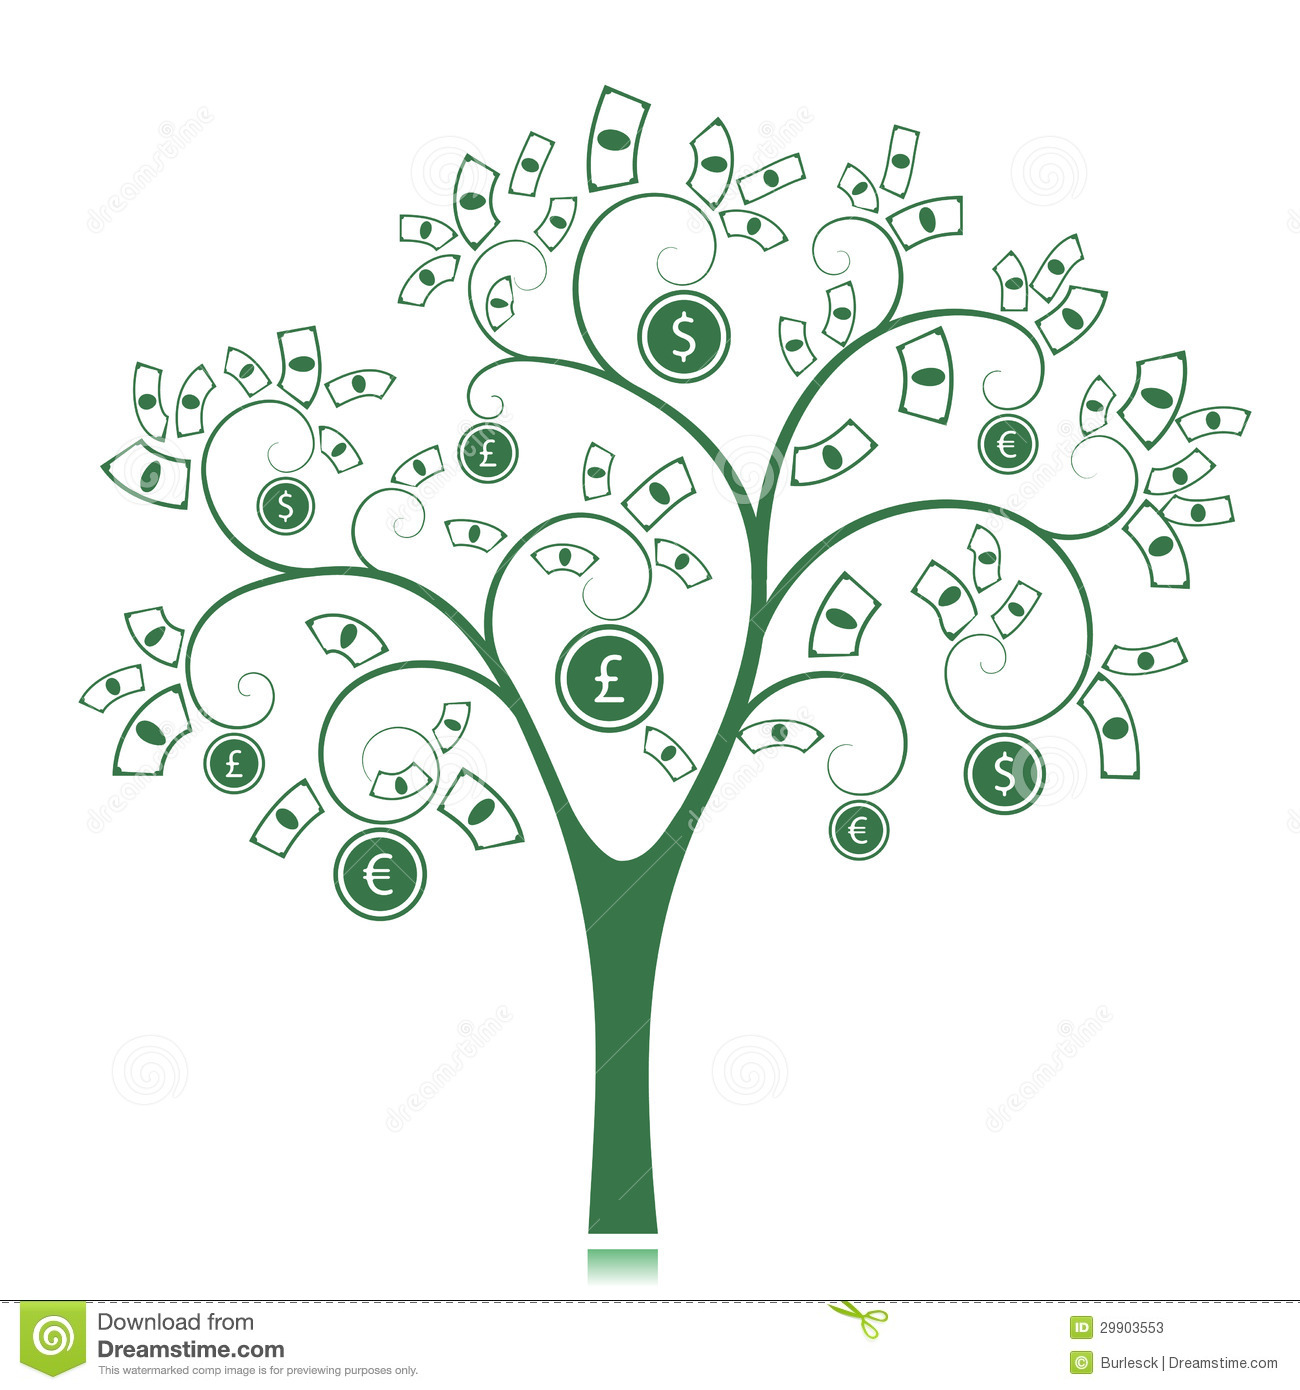 Money Tree isolated on White background. Vector Illustration.: dreamstime.com/stock-photos-money-tree-isolated-white-background...